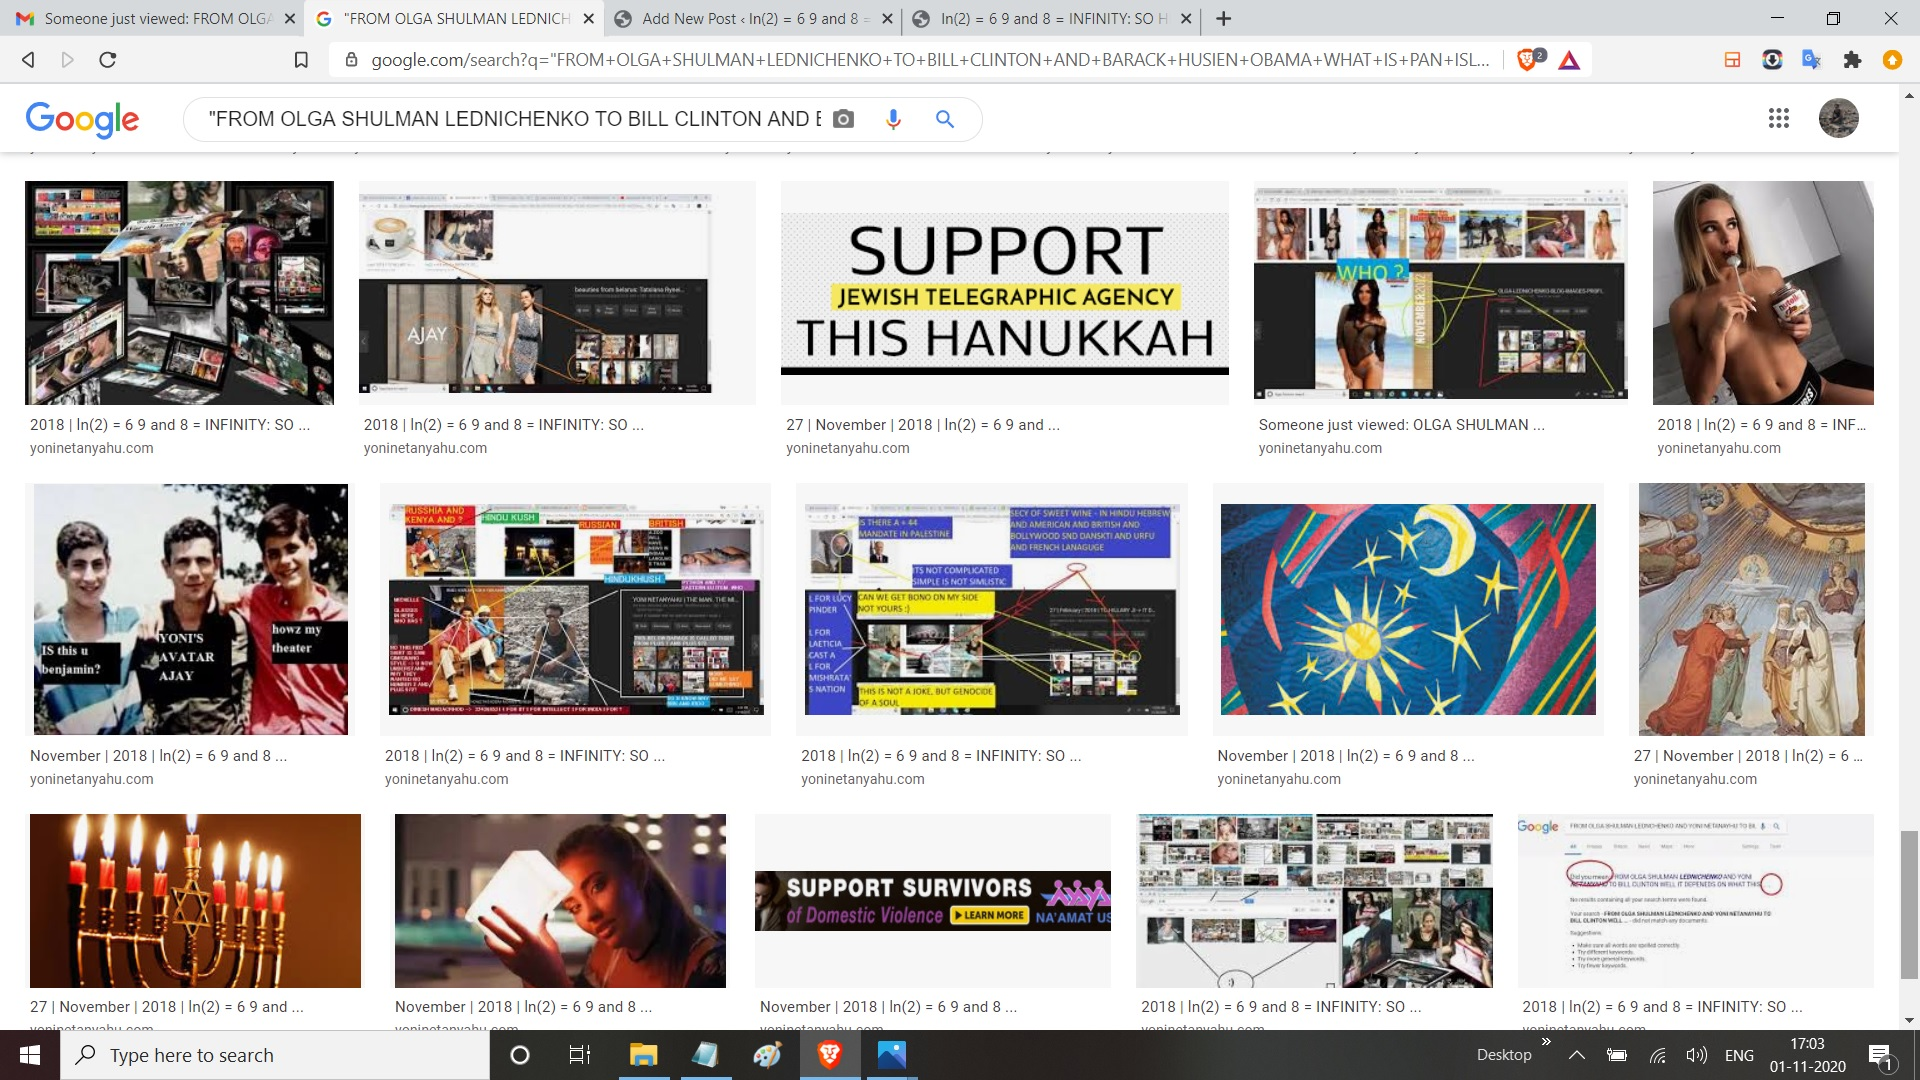 FROM OLGA SHULMAN LEDNICHENKO TO BILL CLINTON AND BARACK HUSIEN OBAMA WHAT IS PAN ISLAMISM